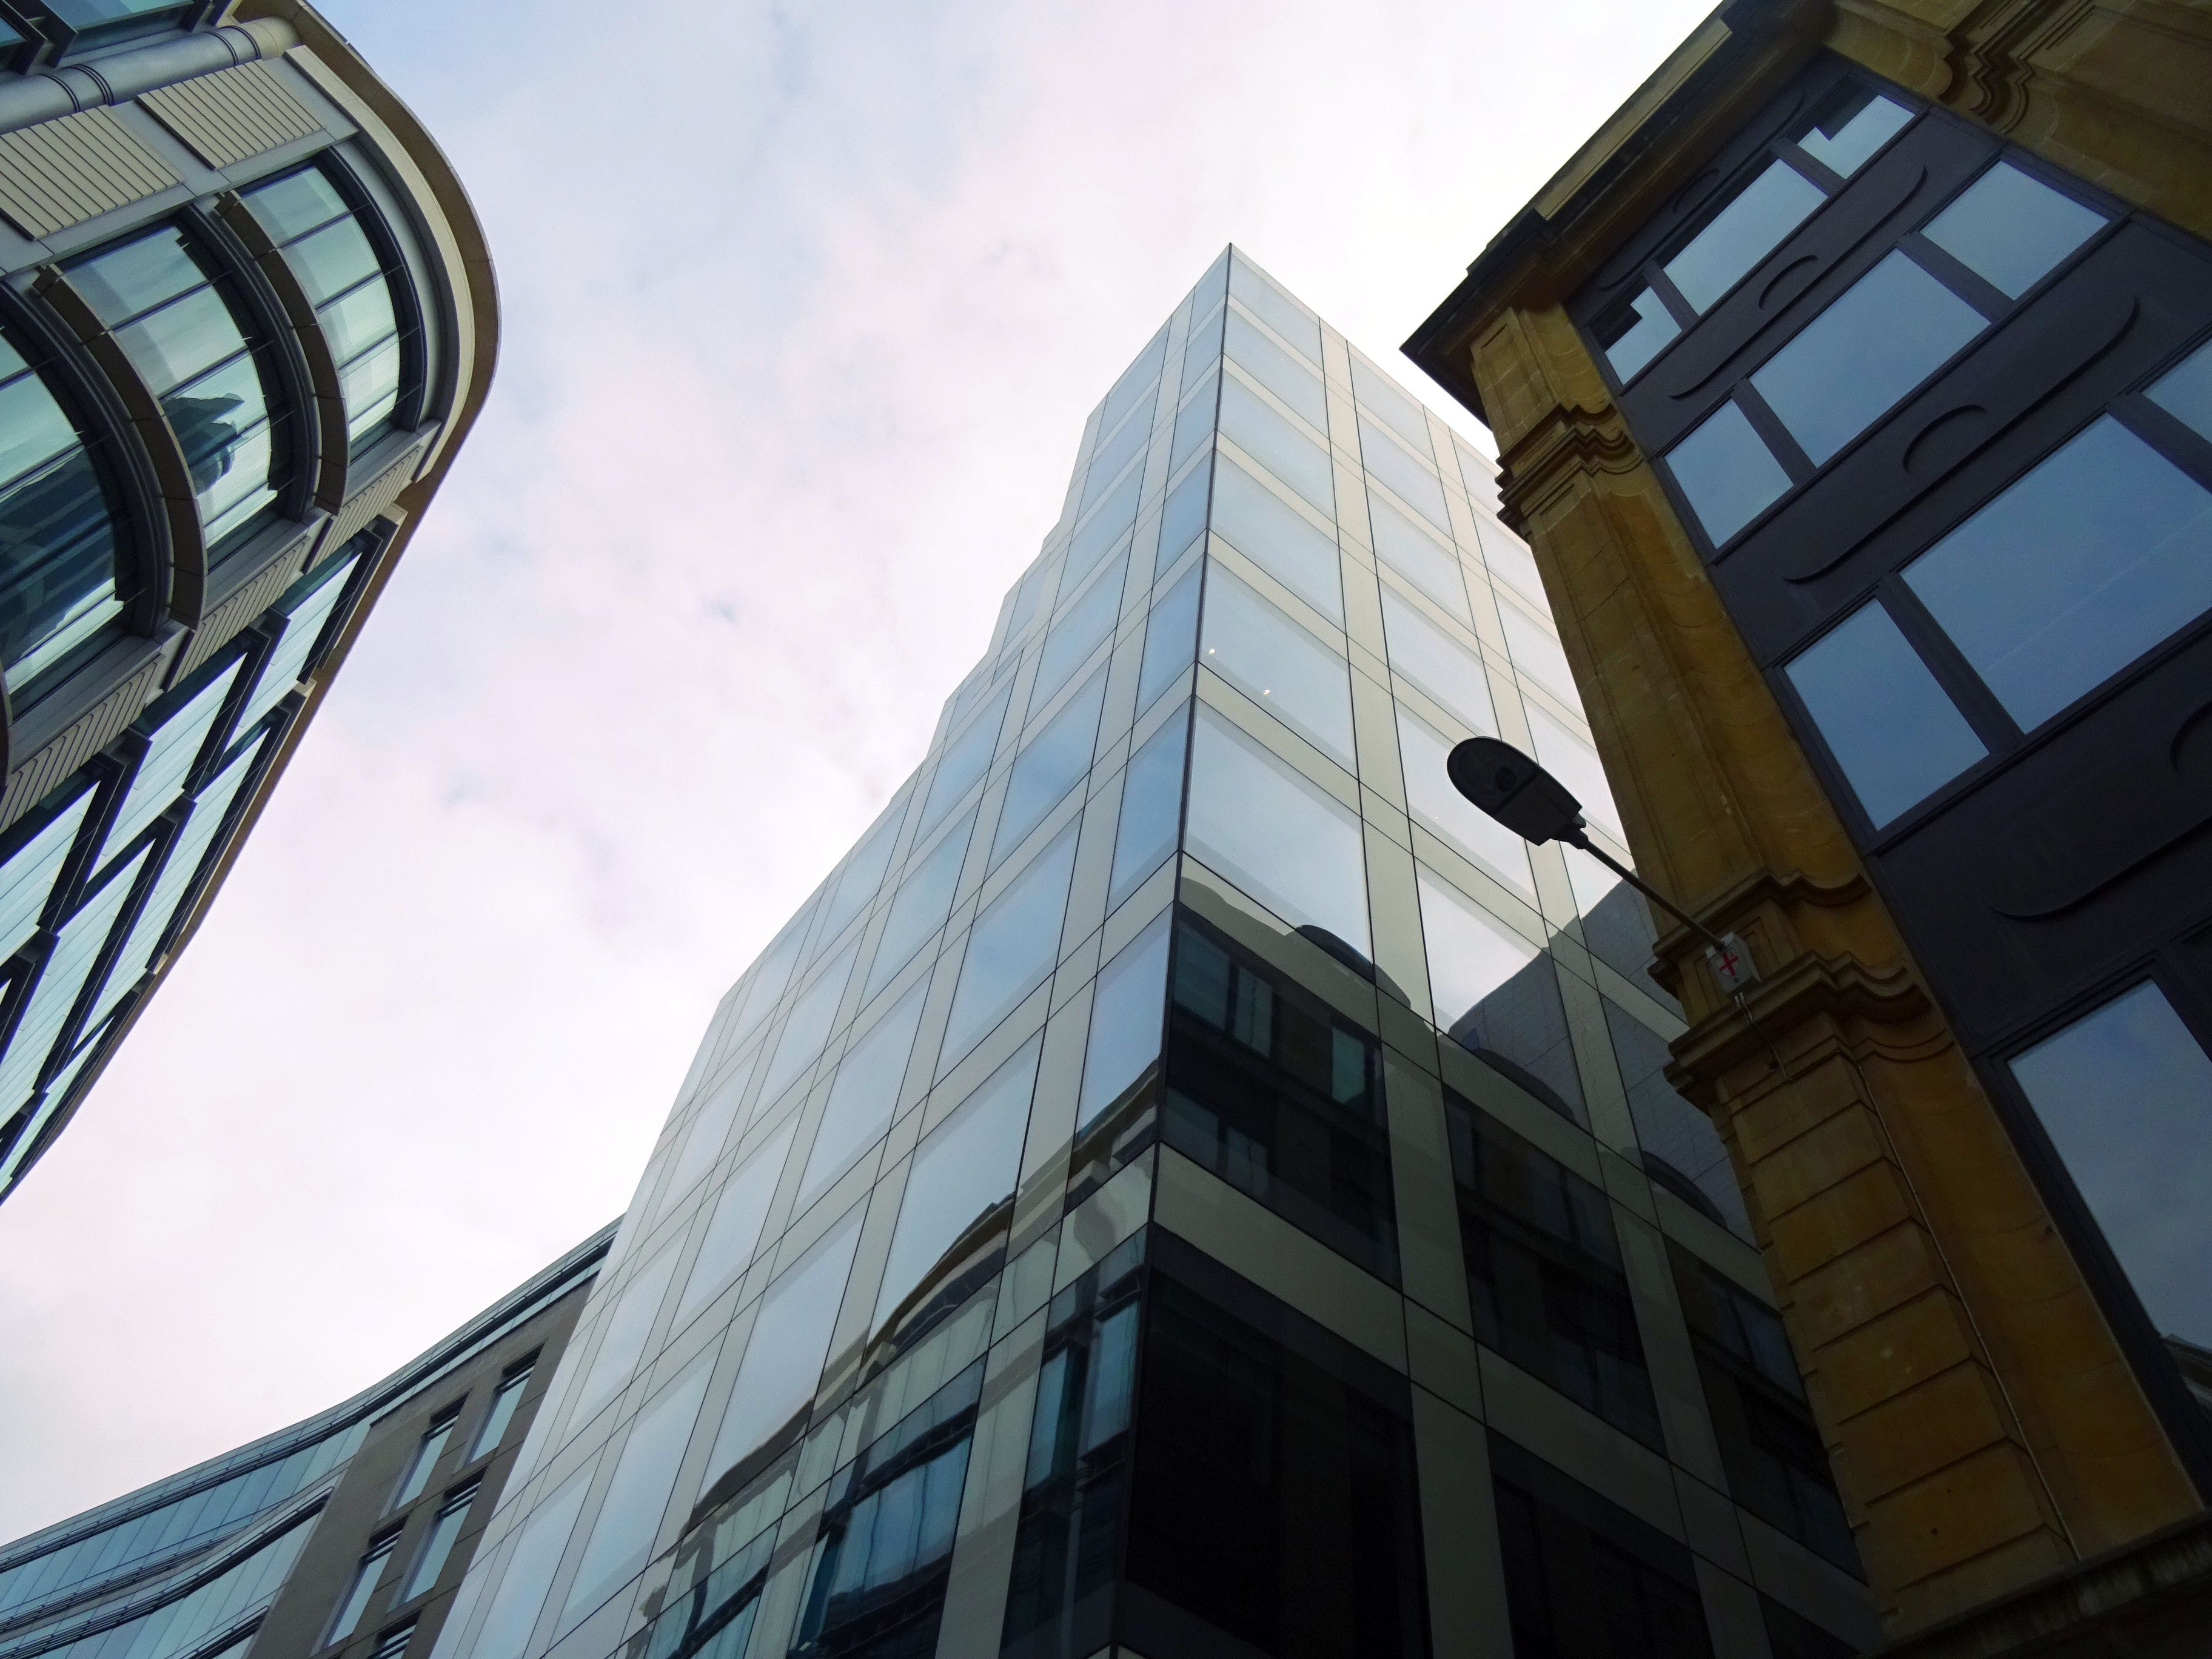 Low-angle Photography of Glass Building during Day